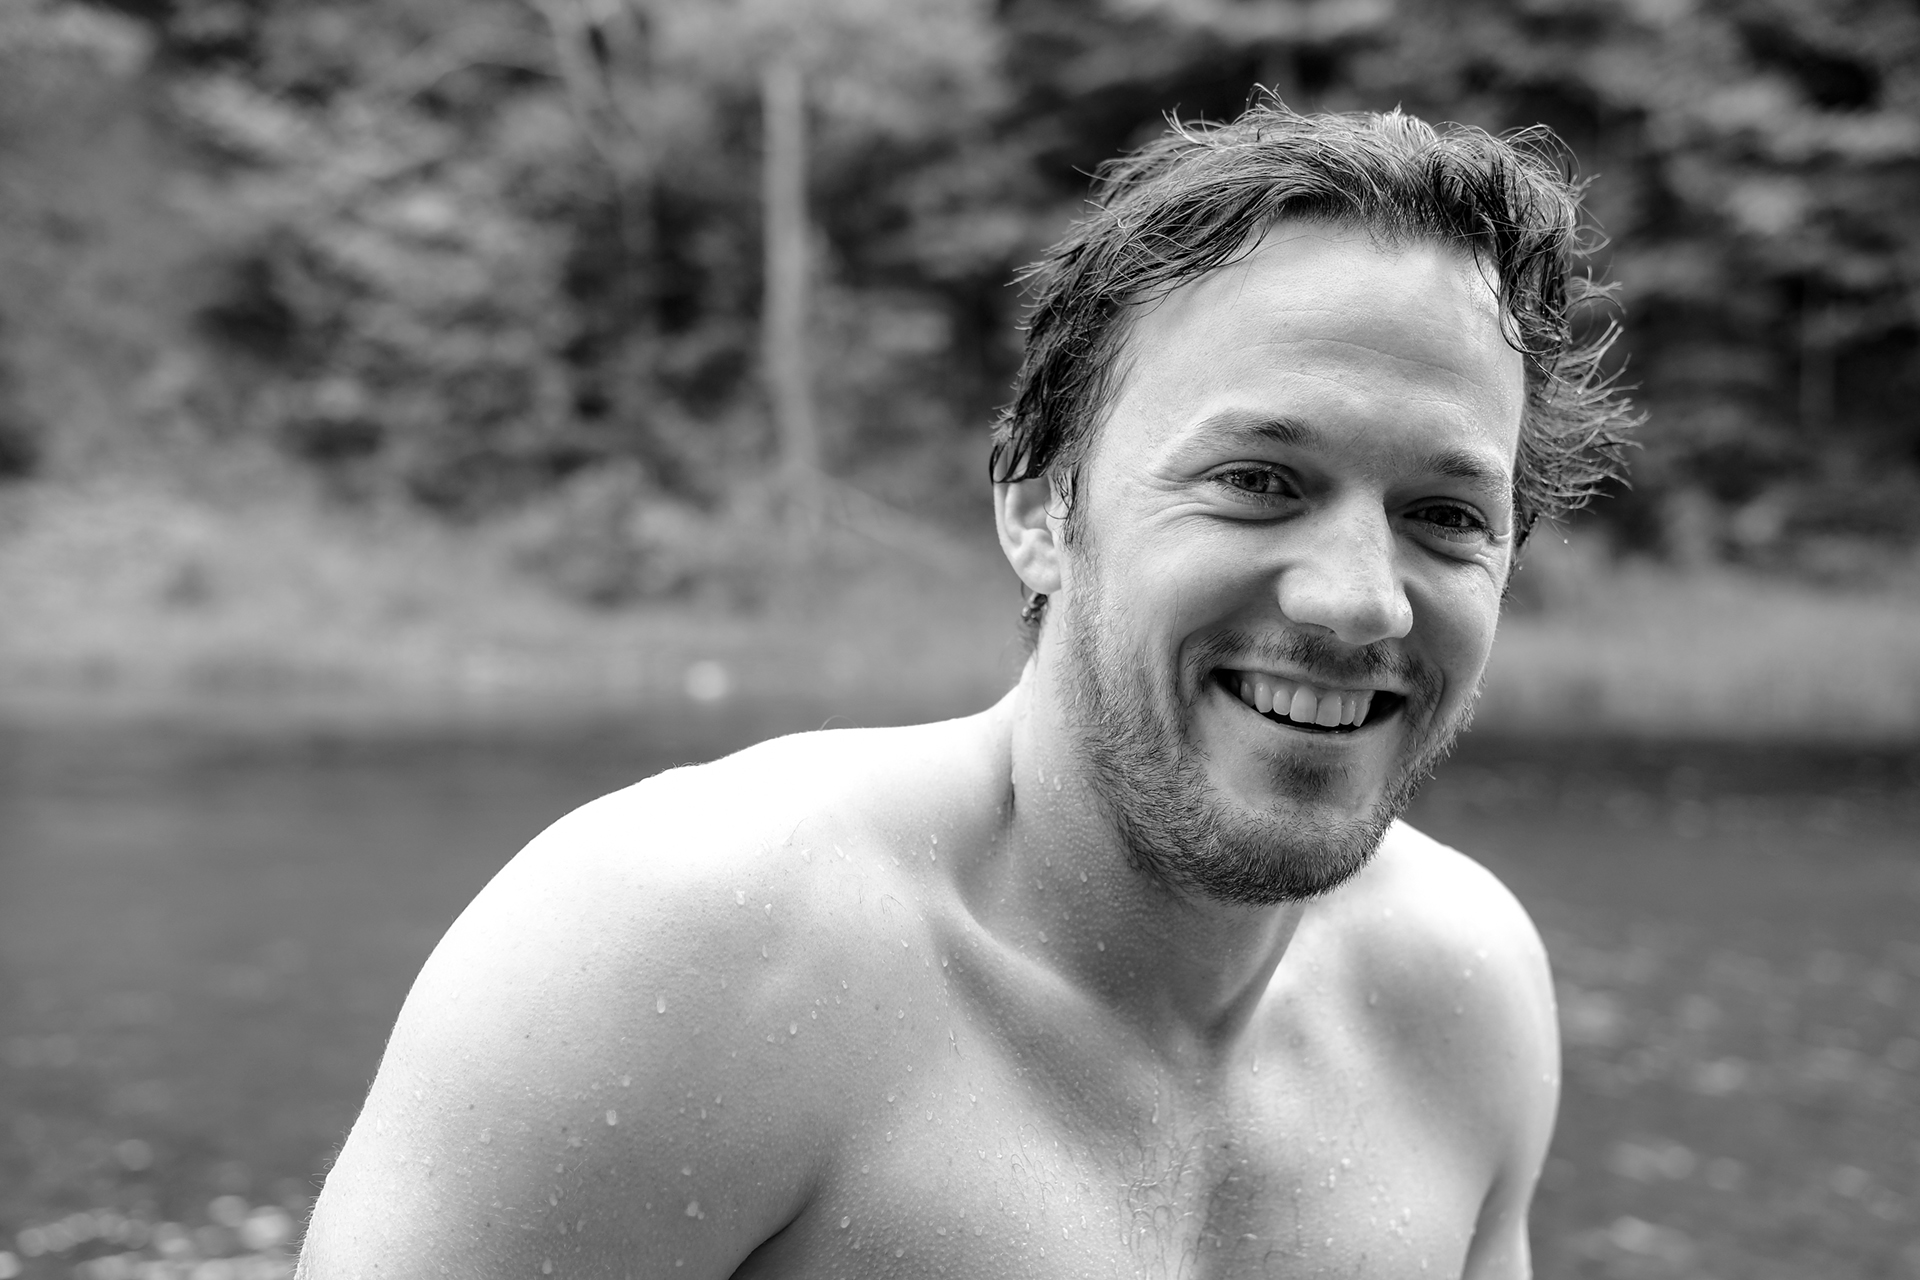 Liam all smiles after going for a quick dip to help one of this tubers into the shore.